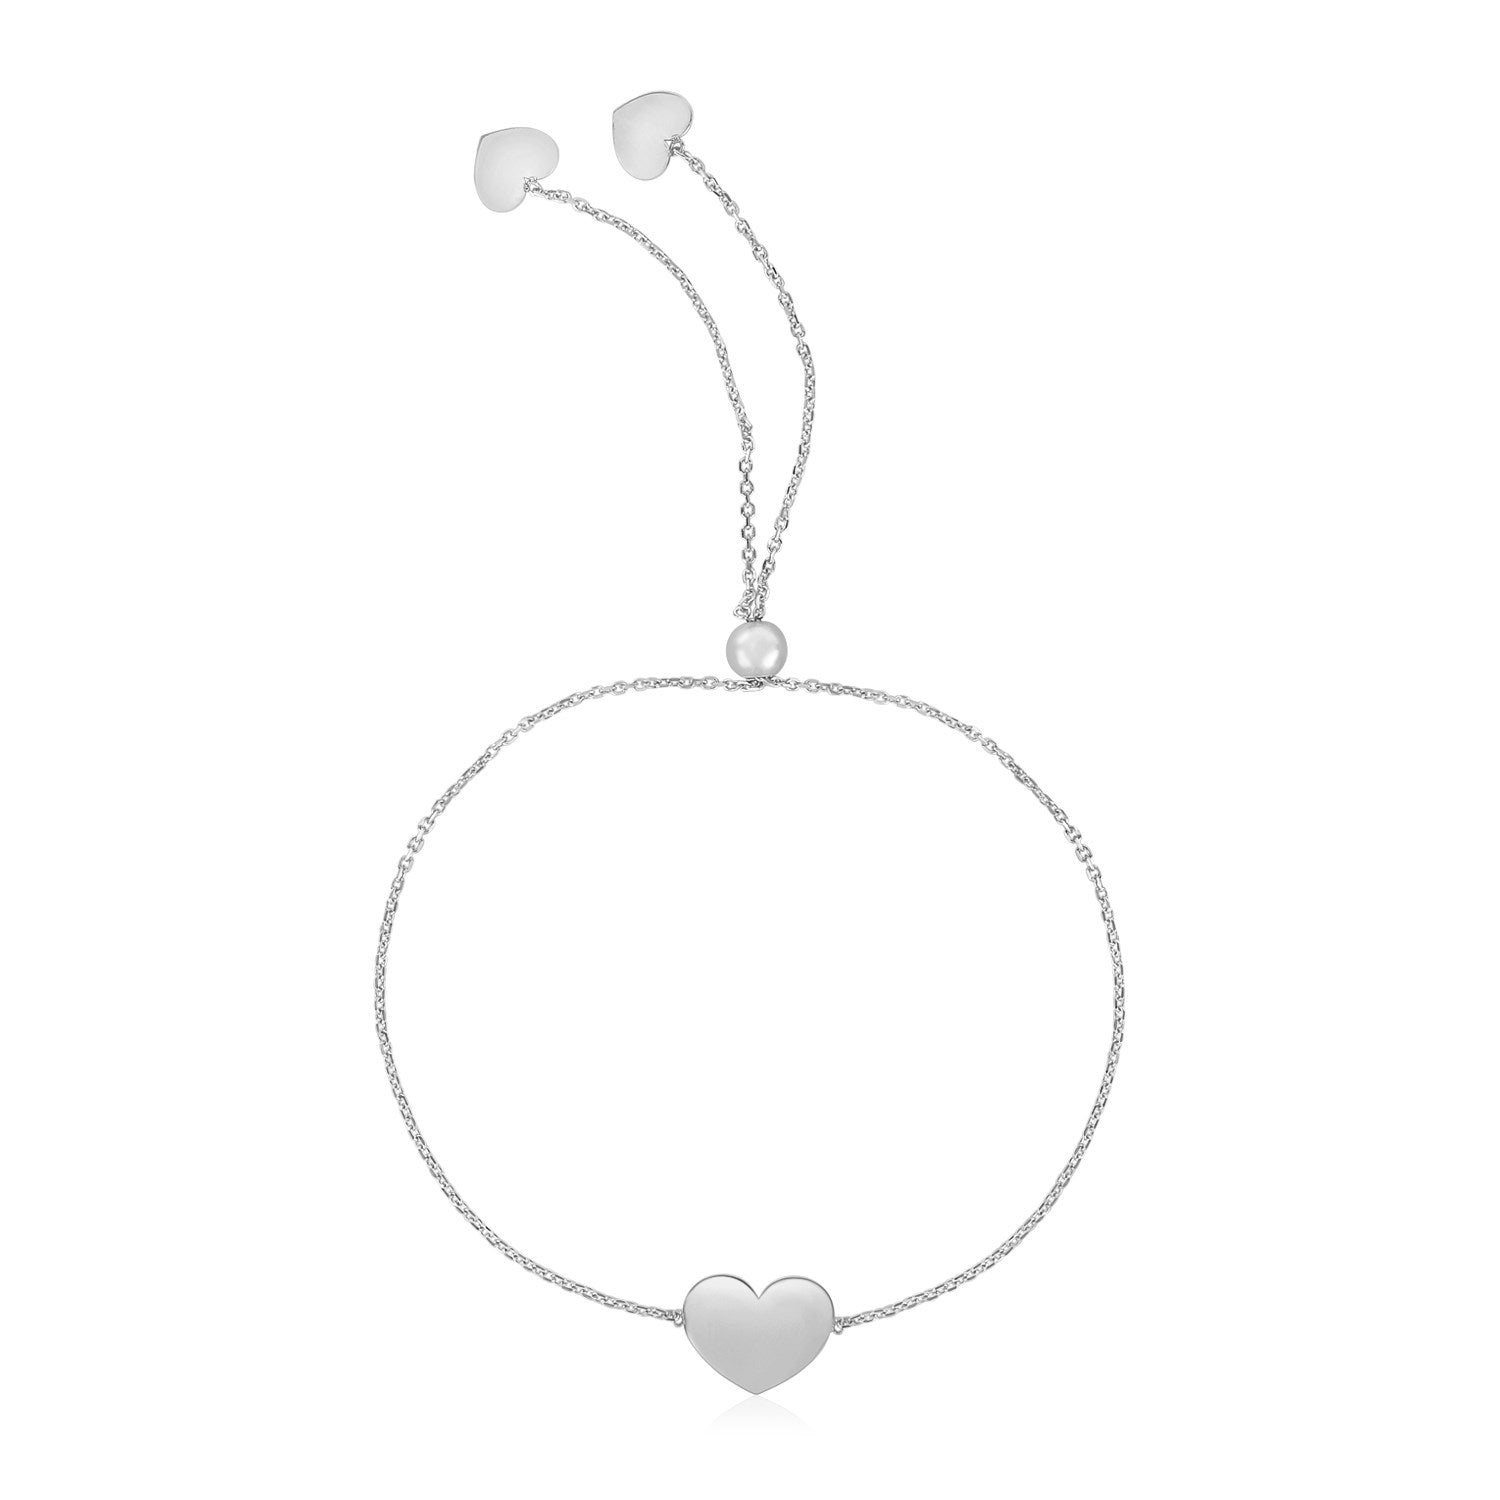 14k White Gold Adjustable Heart Bracelet